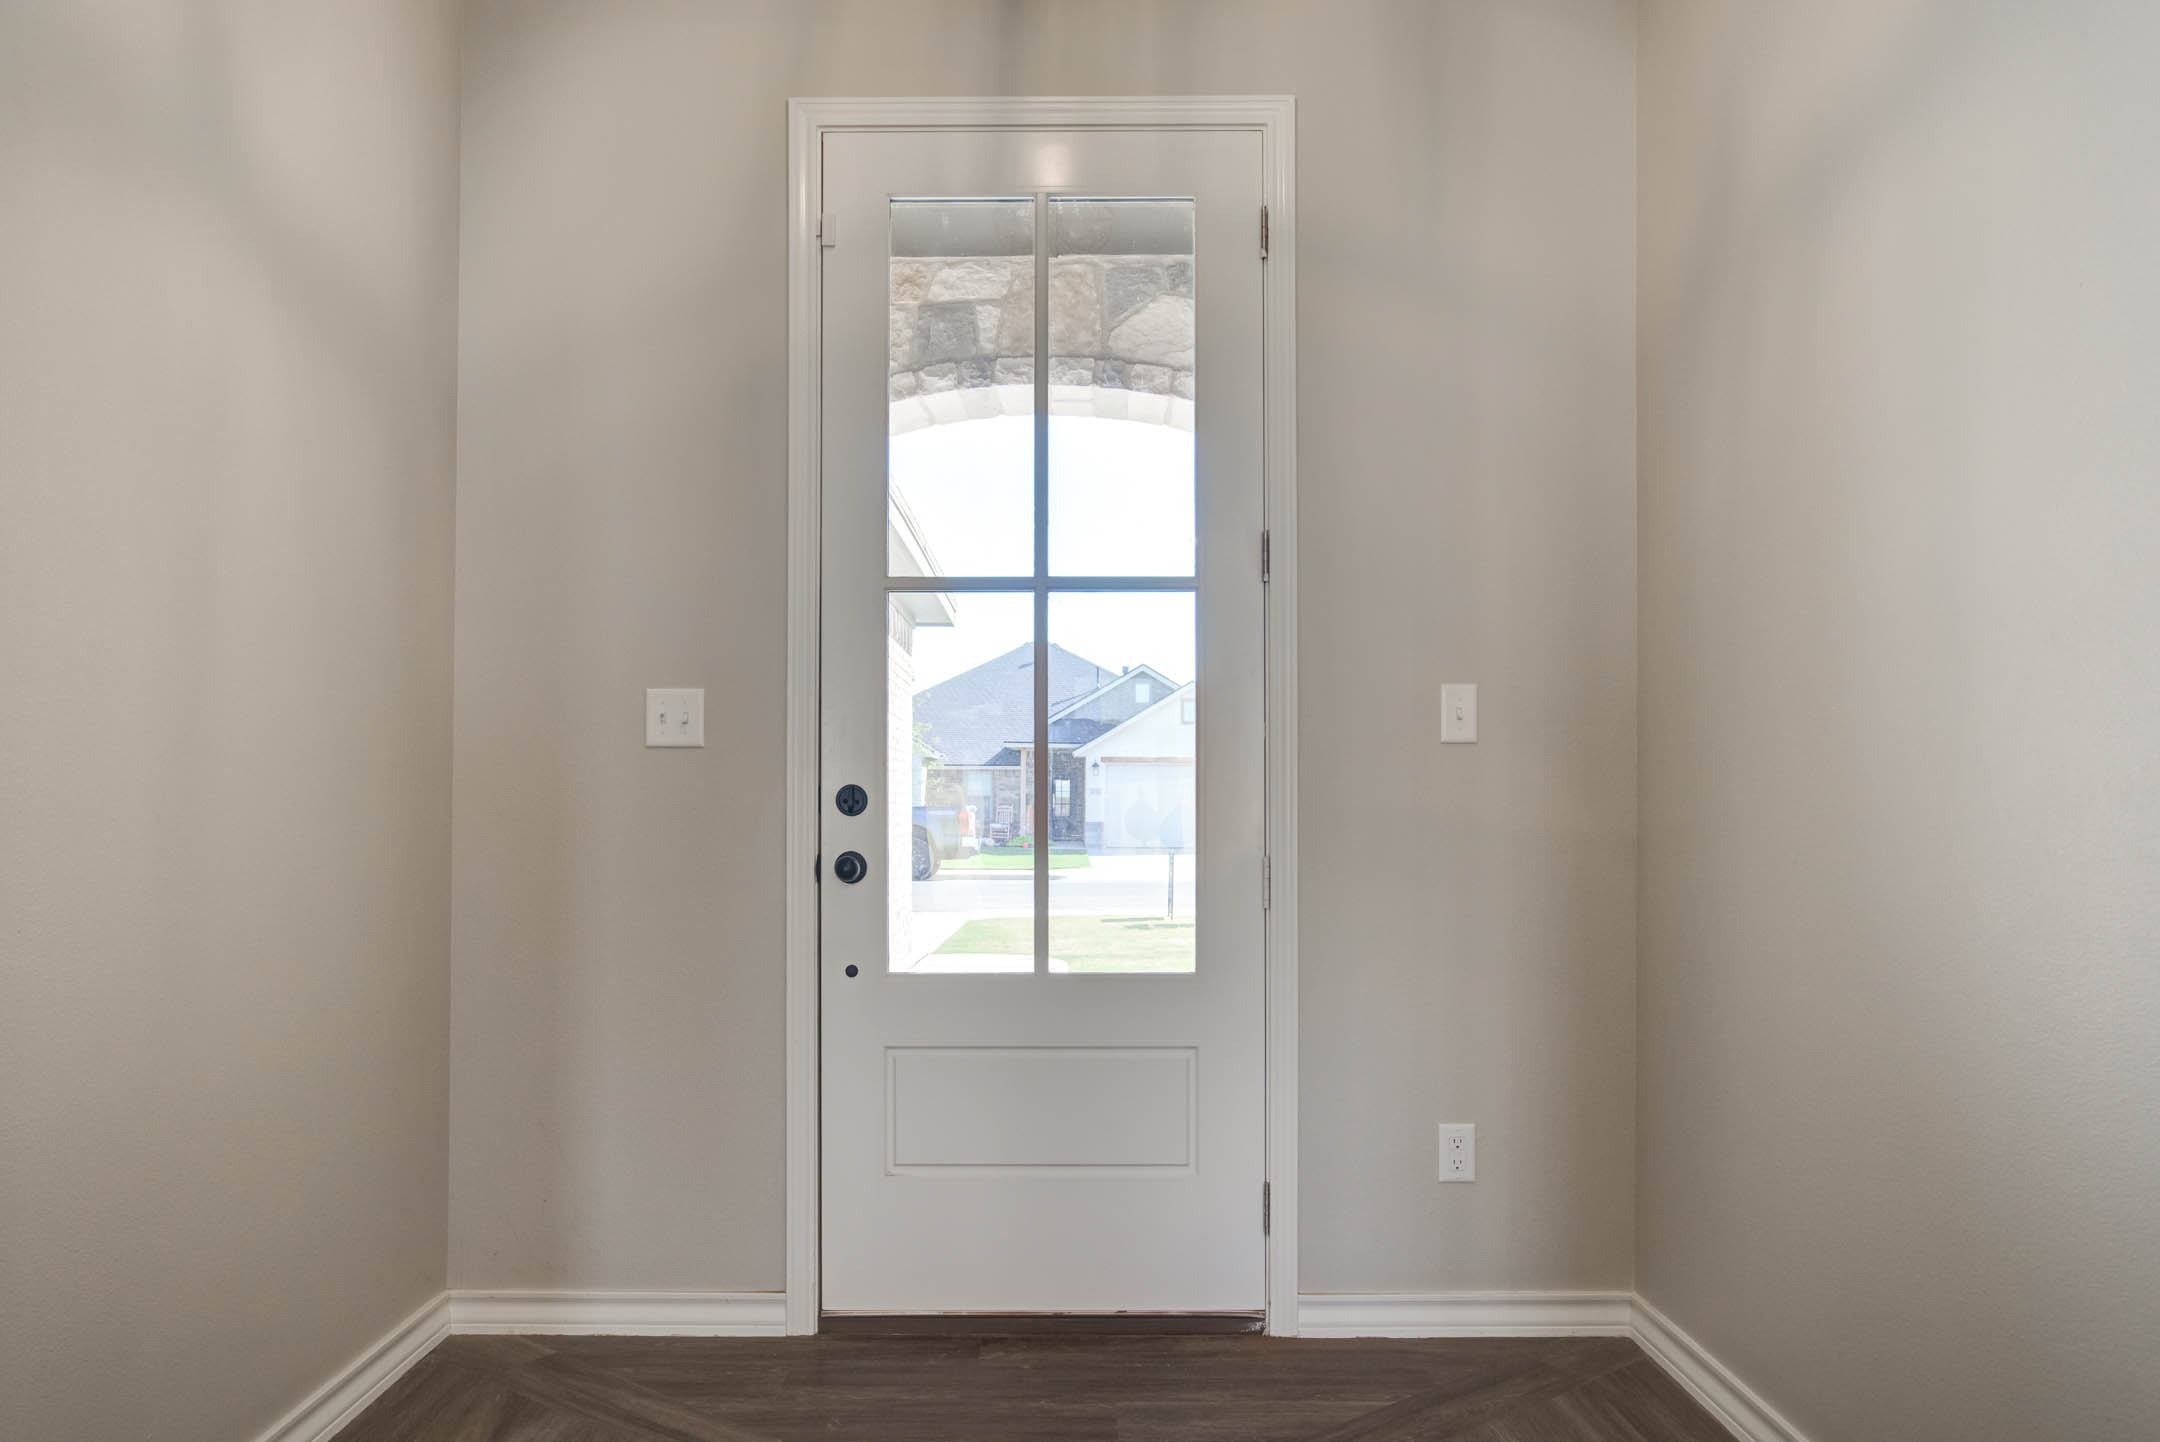 Entry door & foyer of new home for sale in Lubbock, Texas.